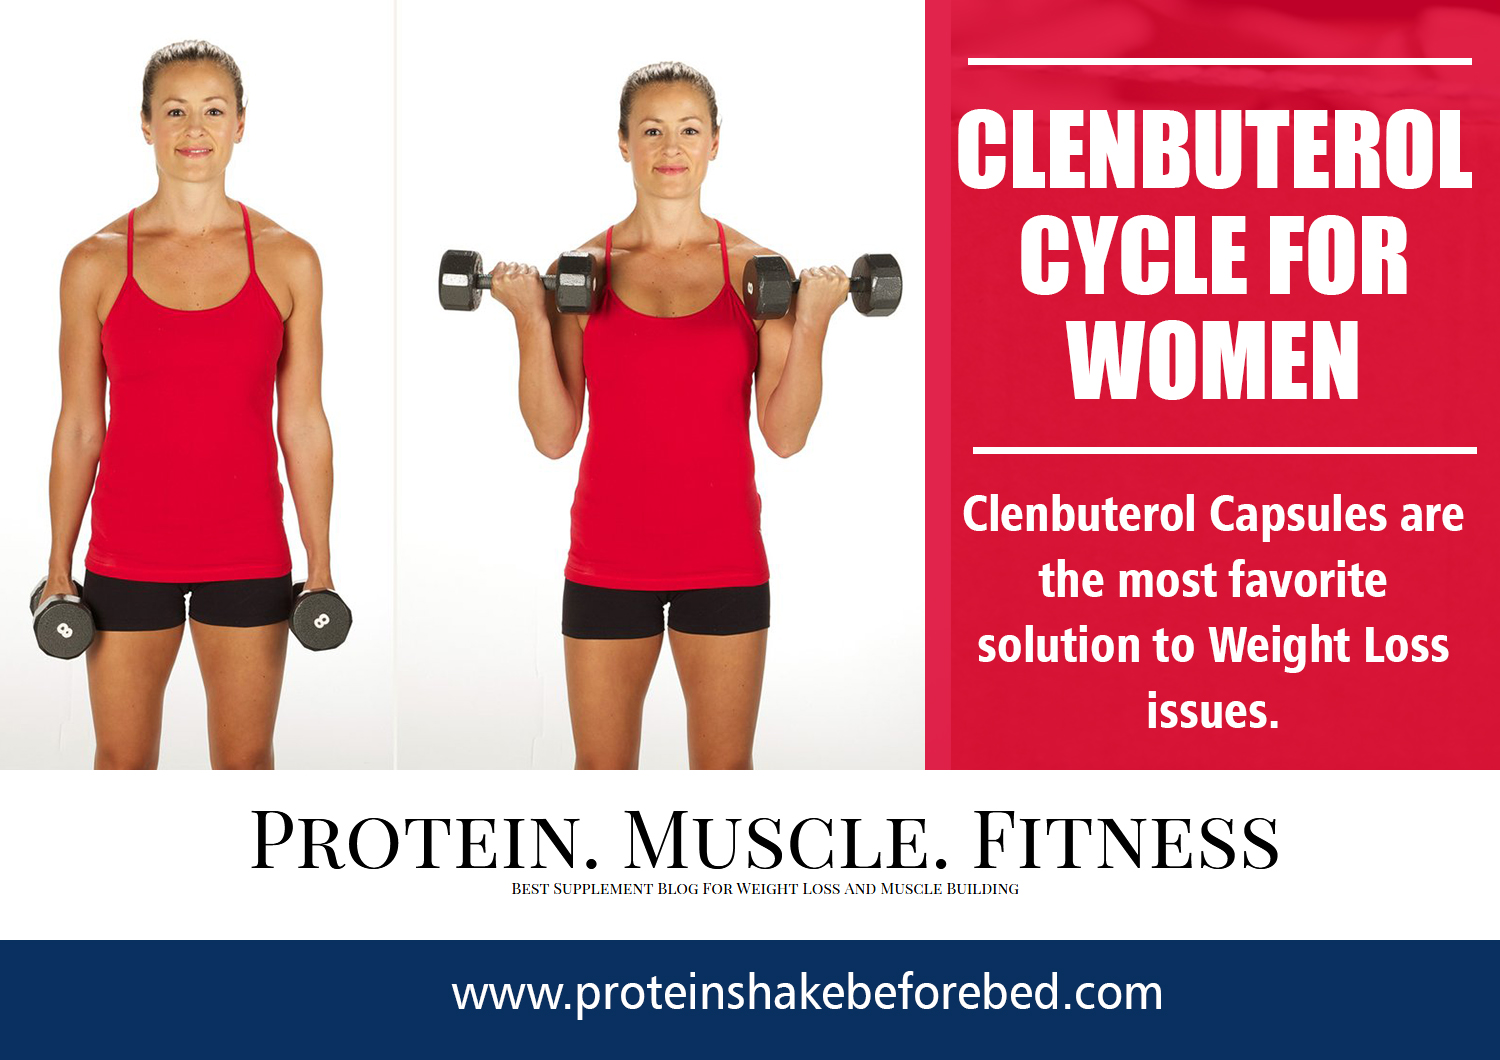 Clenbuterol-Cycle-for-Women — imgbb com